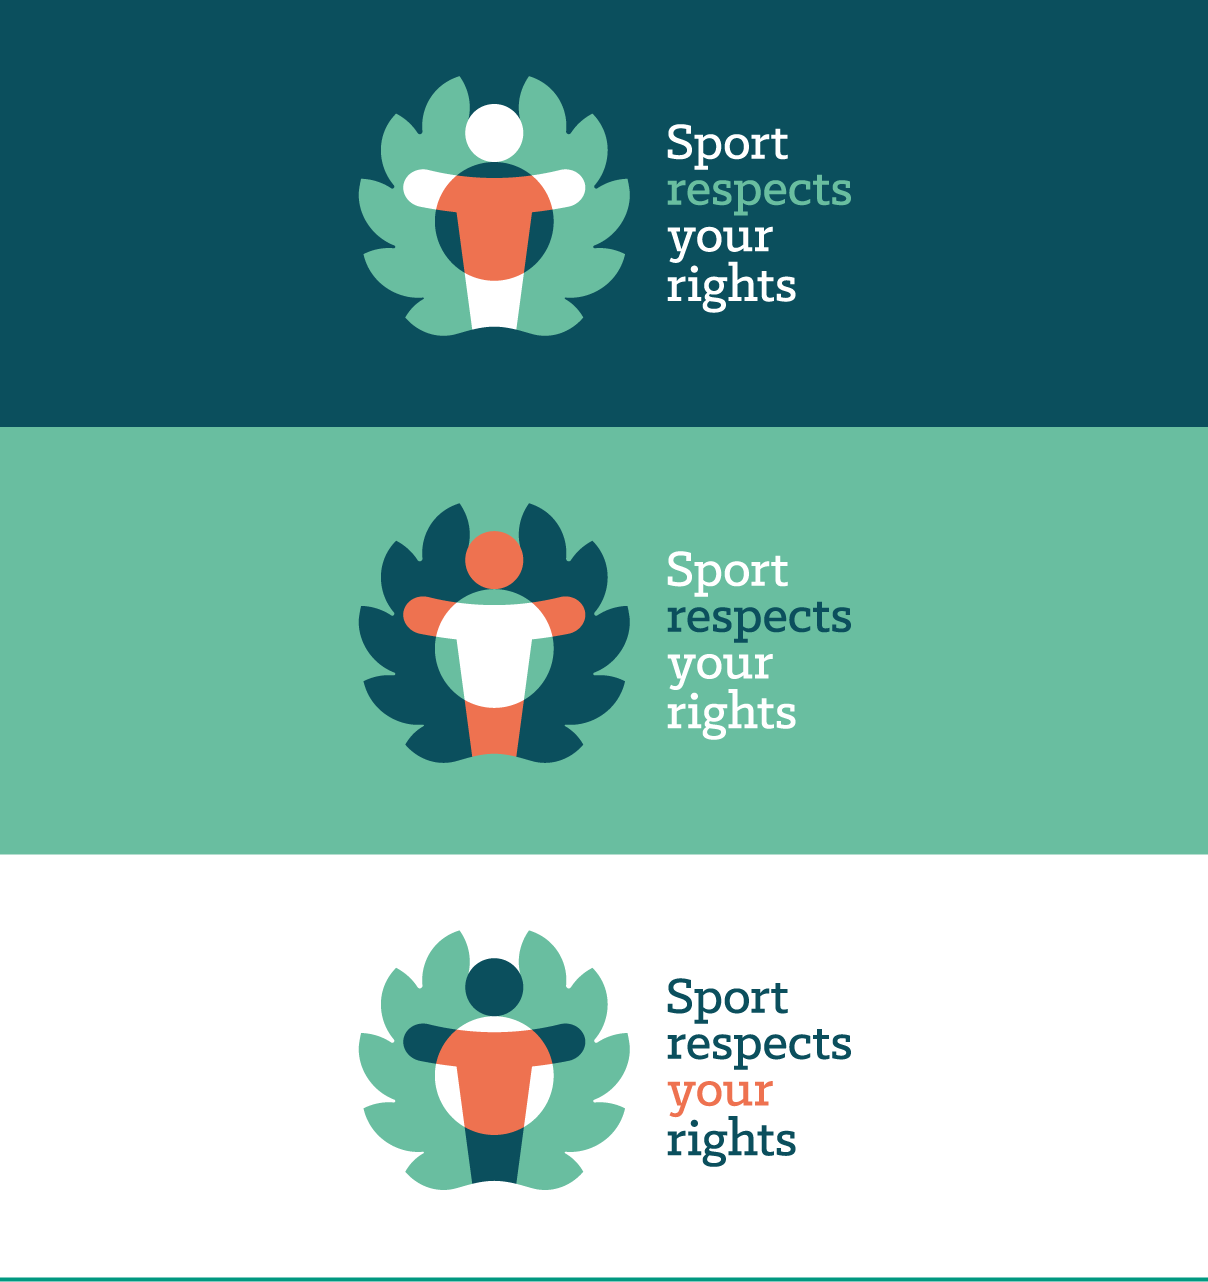 Sport respects your rights project logo in three colour variants.